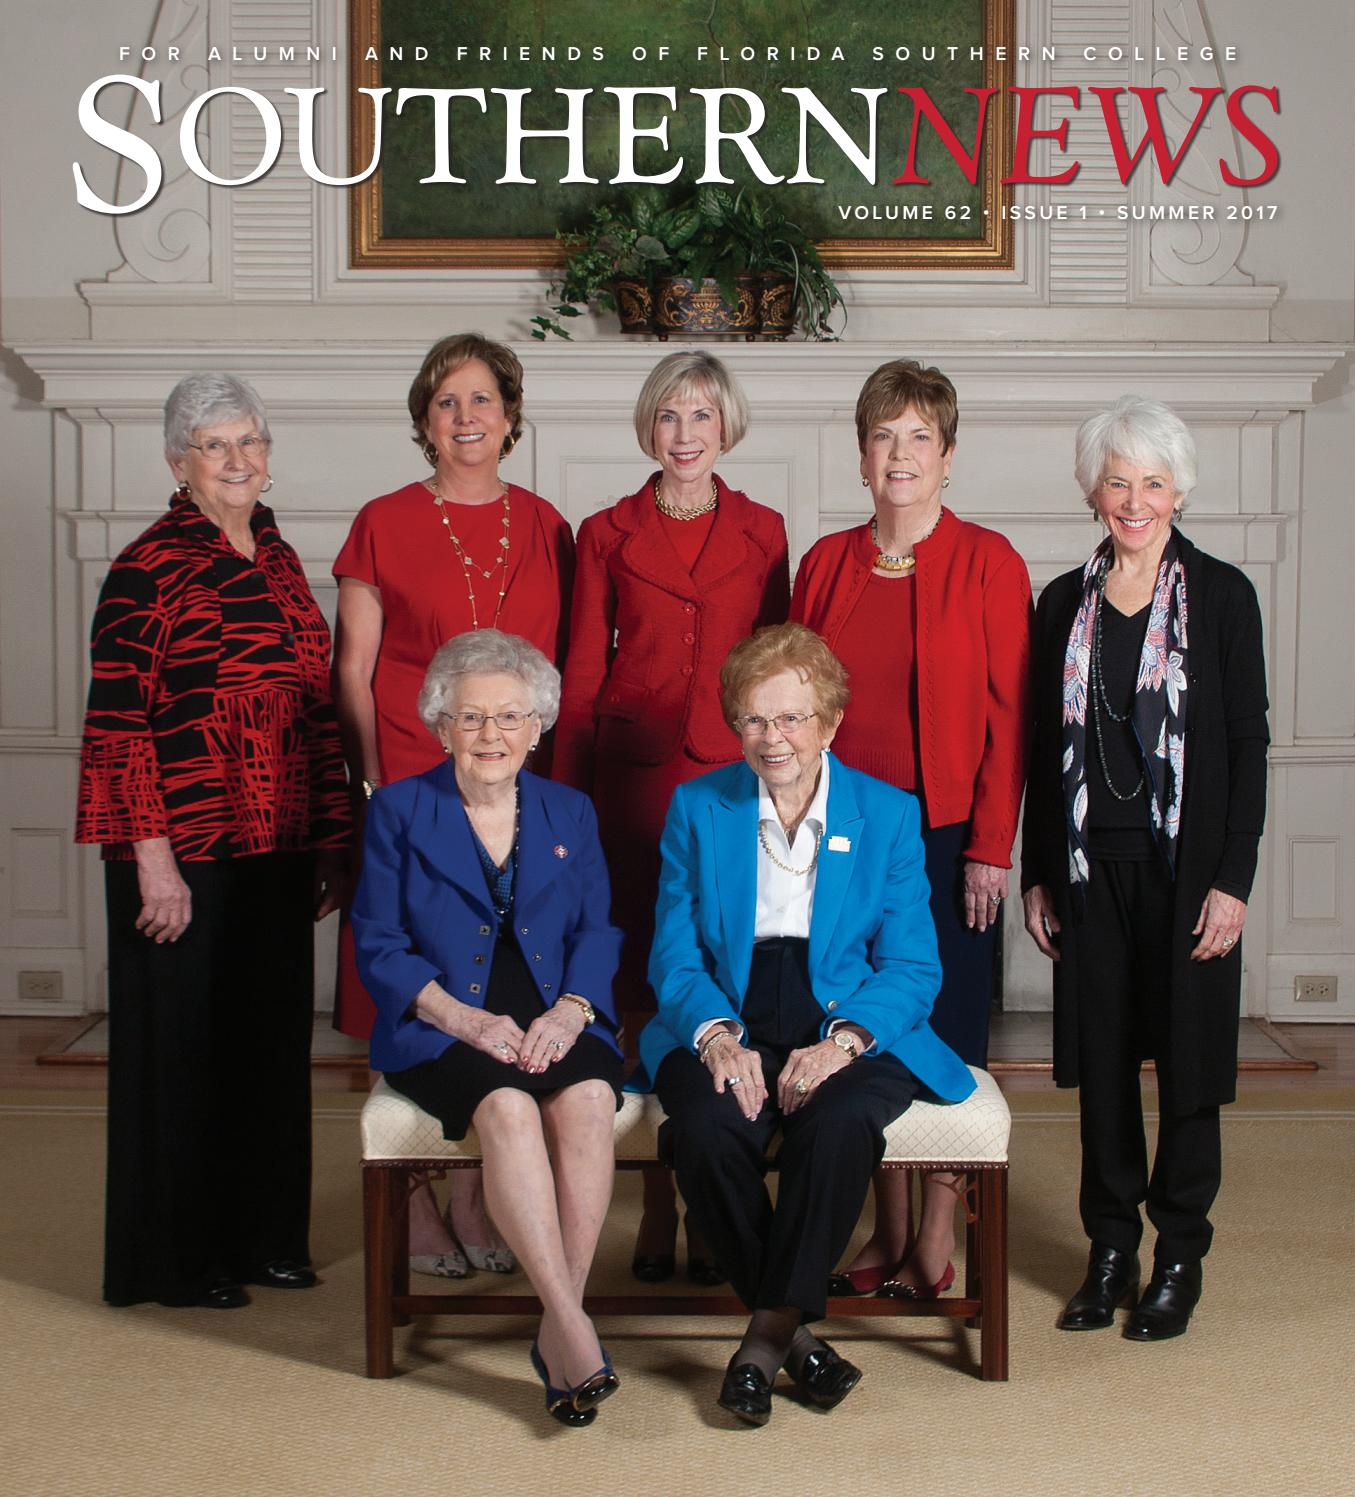 fa54ca101cf Southern News - Summer 2017. For alumni and friends of ...